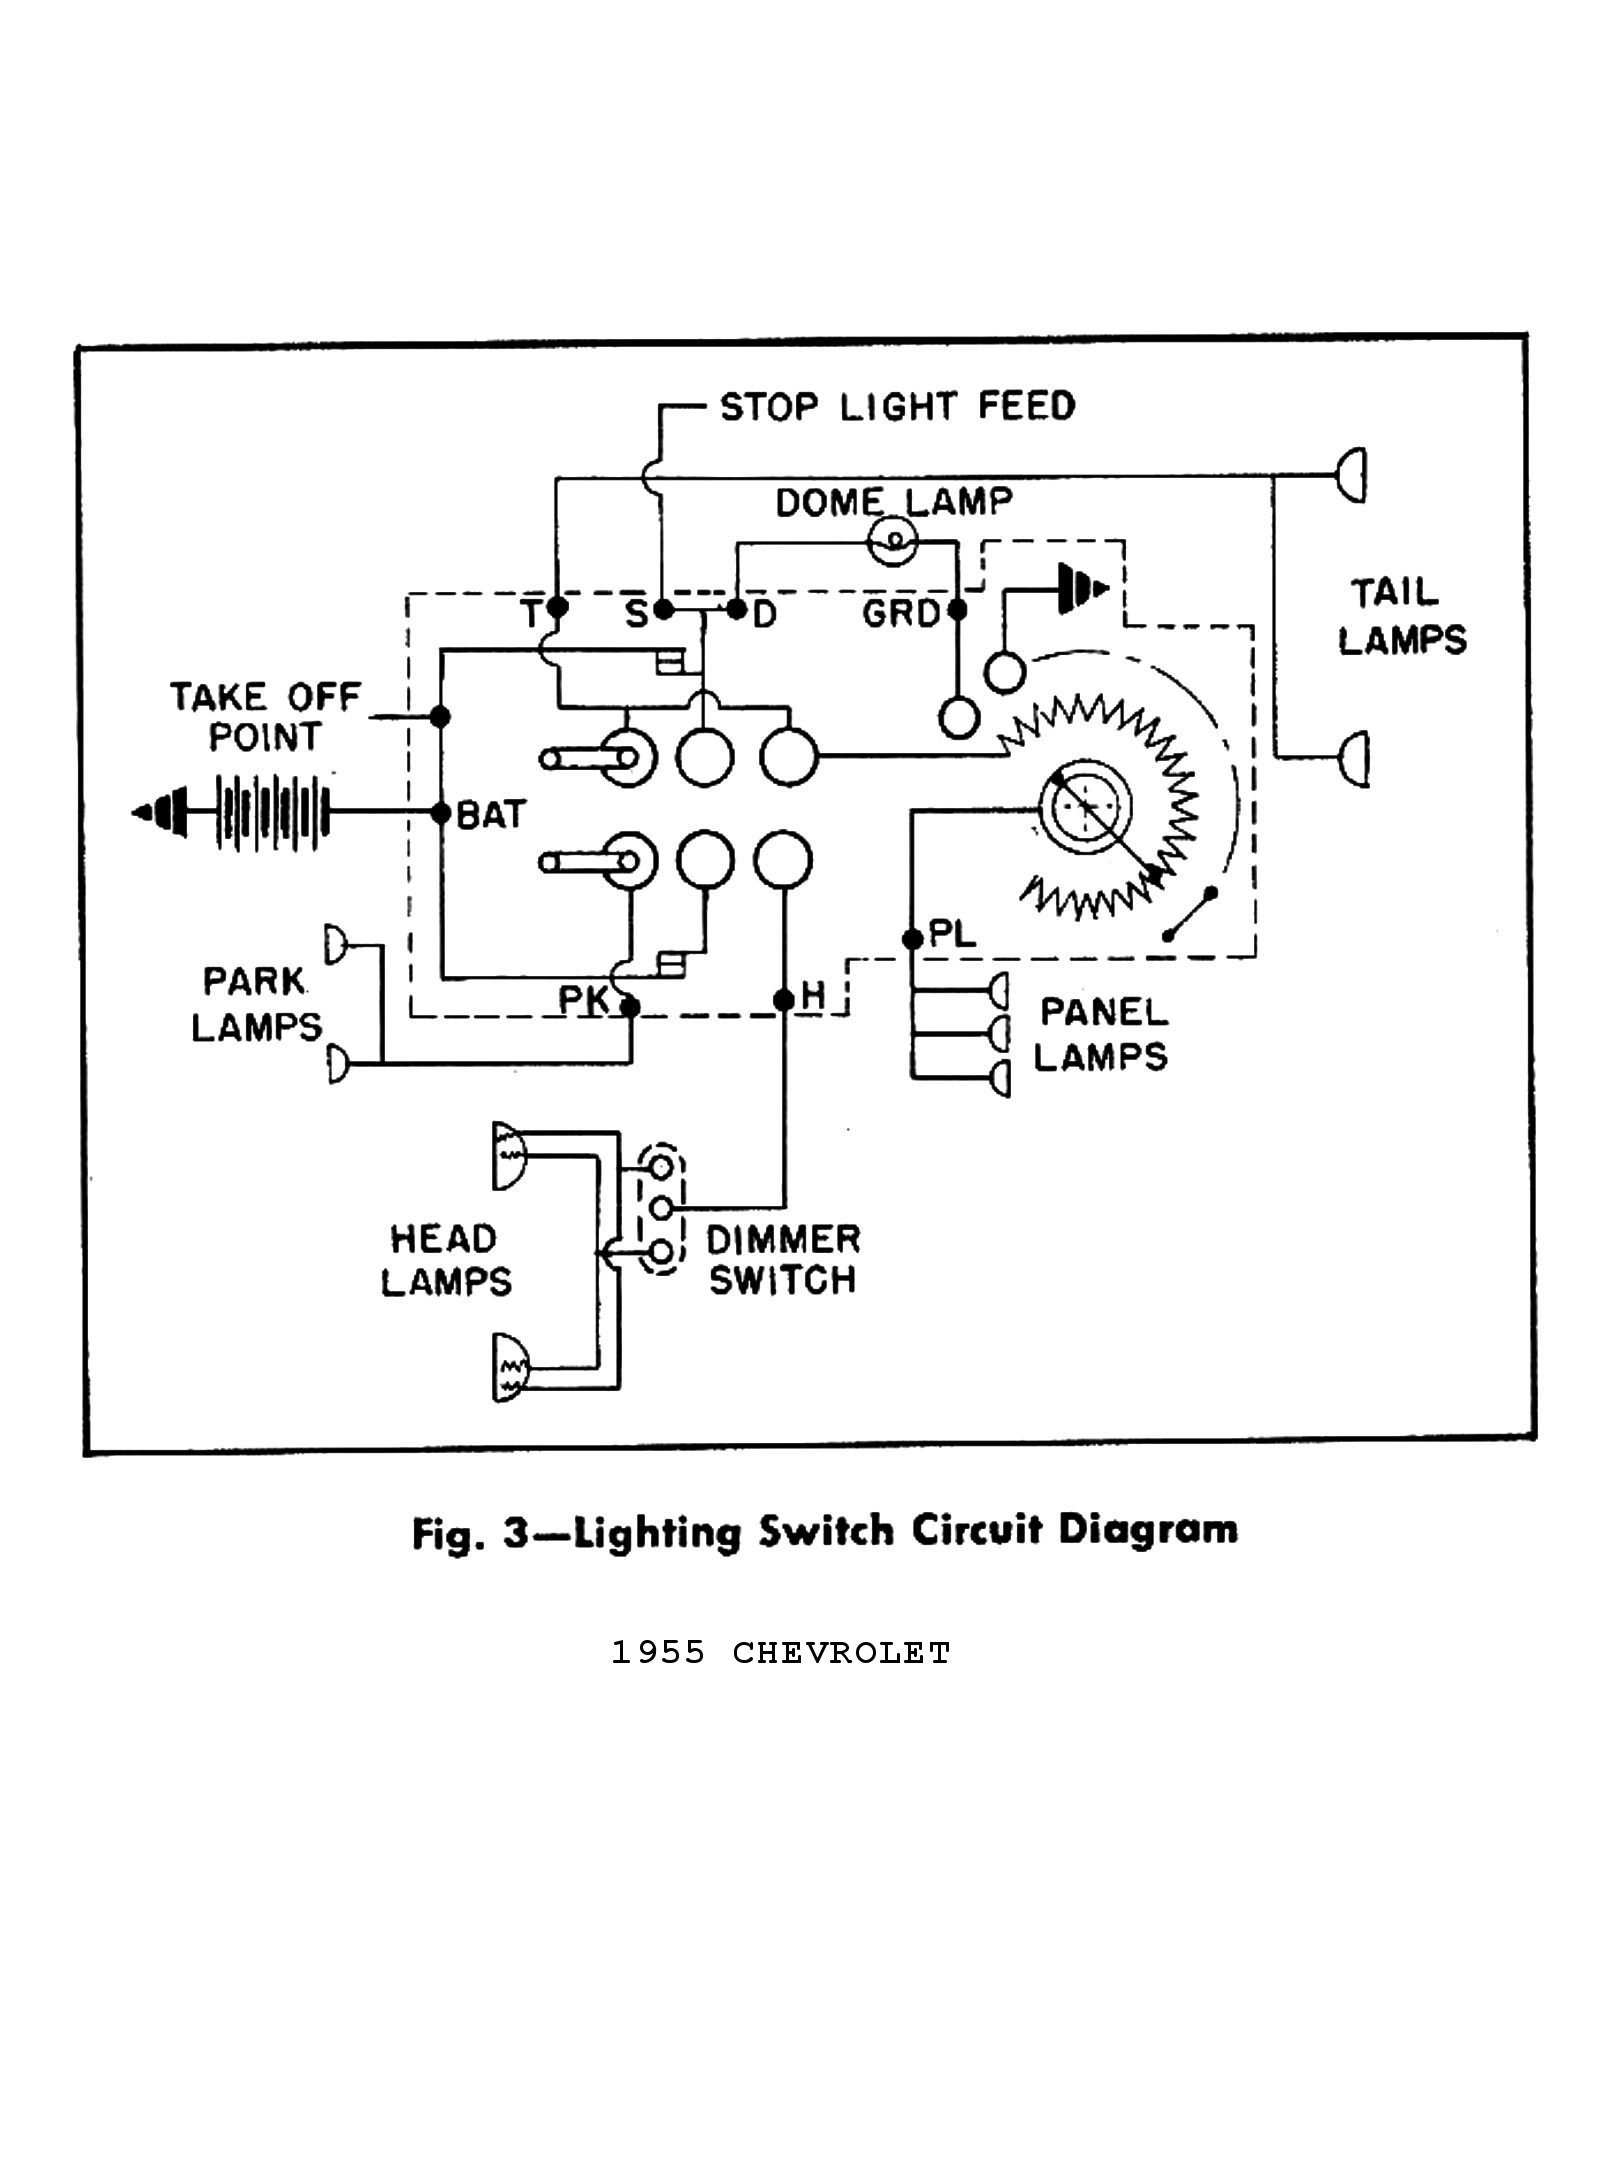 gm headlight switch 407 wiring diagram wiring diagram for light rh prestonfarmmotors co 1950 ford sedan wiring diagram 1950 ford truck wiring diagram